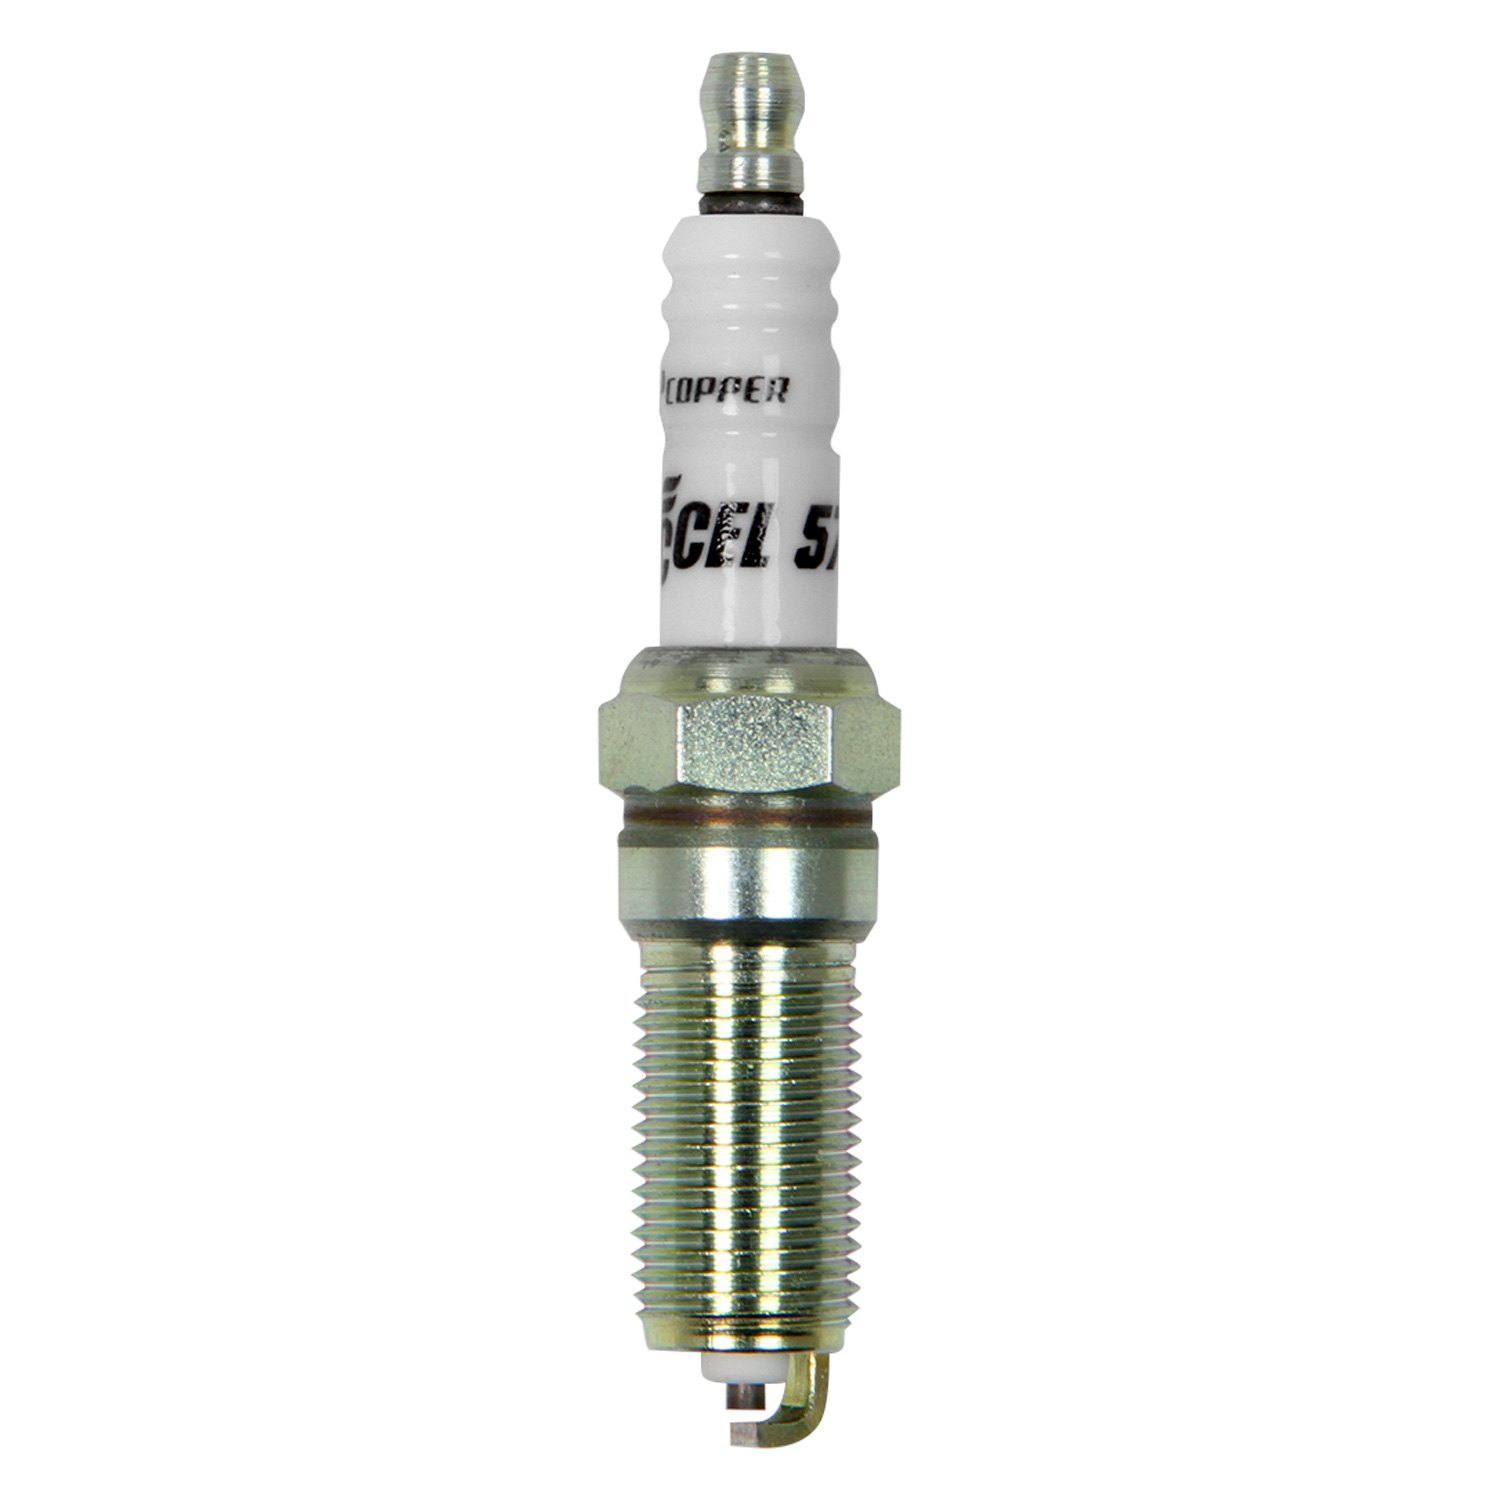 buy cheap Accel® 578C1 - HP Copper Spark Plug for 2015 RAM 1500 TRUCK Ebay & Amazon